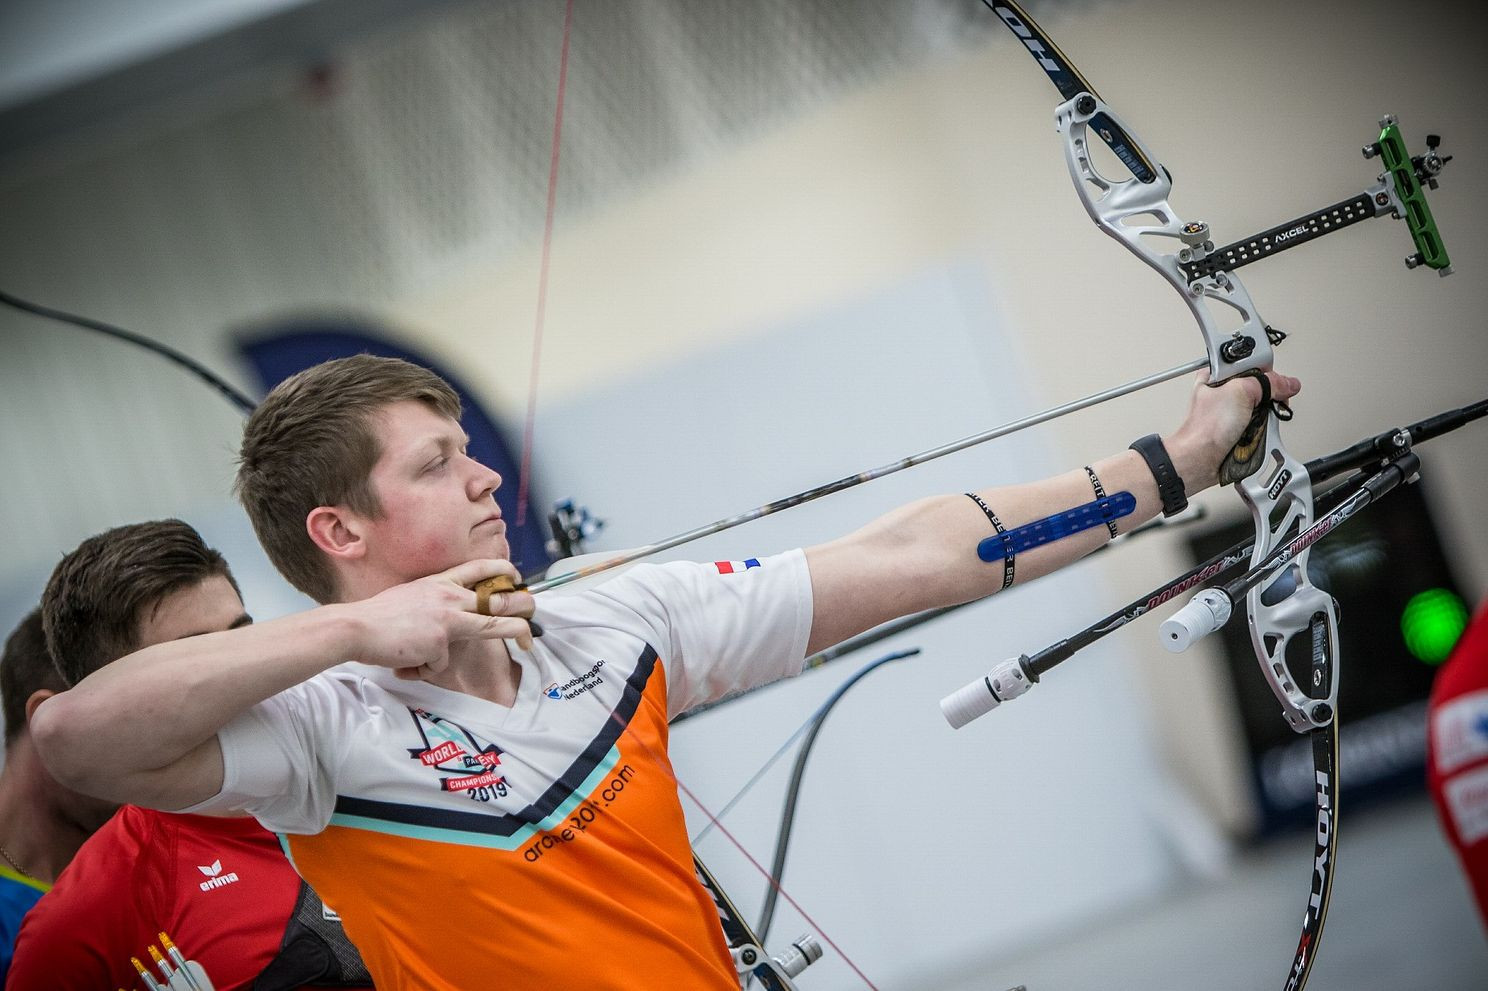 Sjef van den Berg also broke a European record in the recurve event ©Getty Images